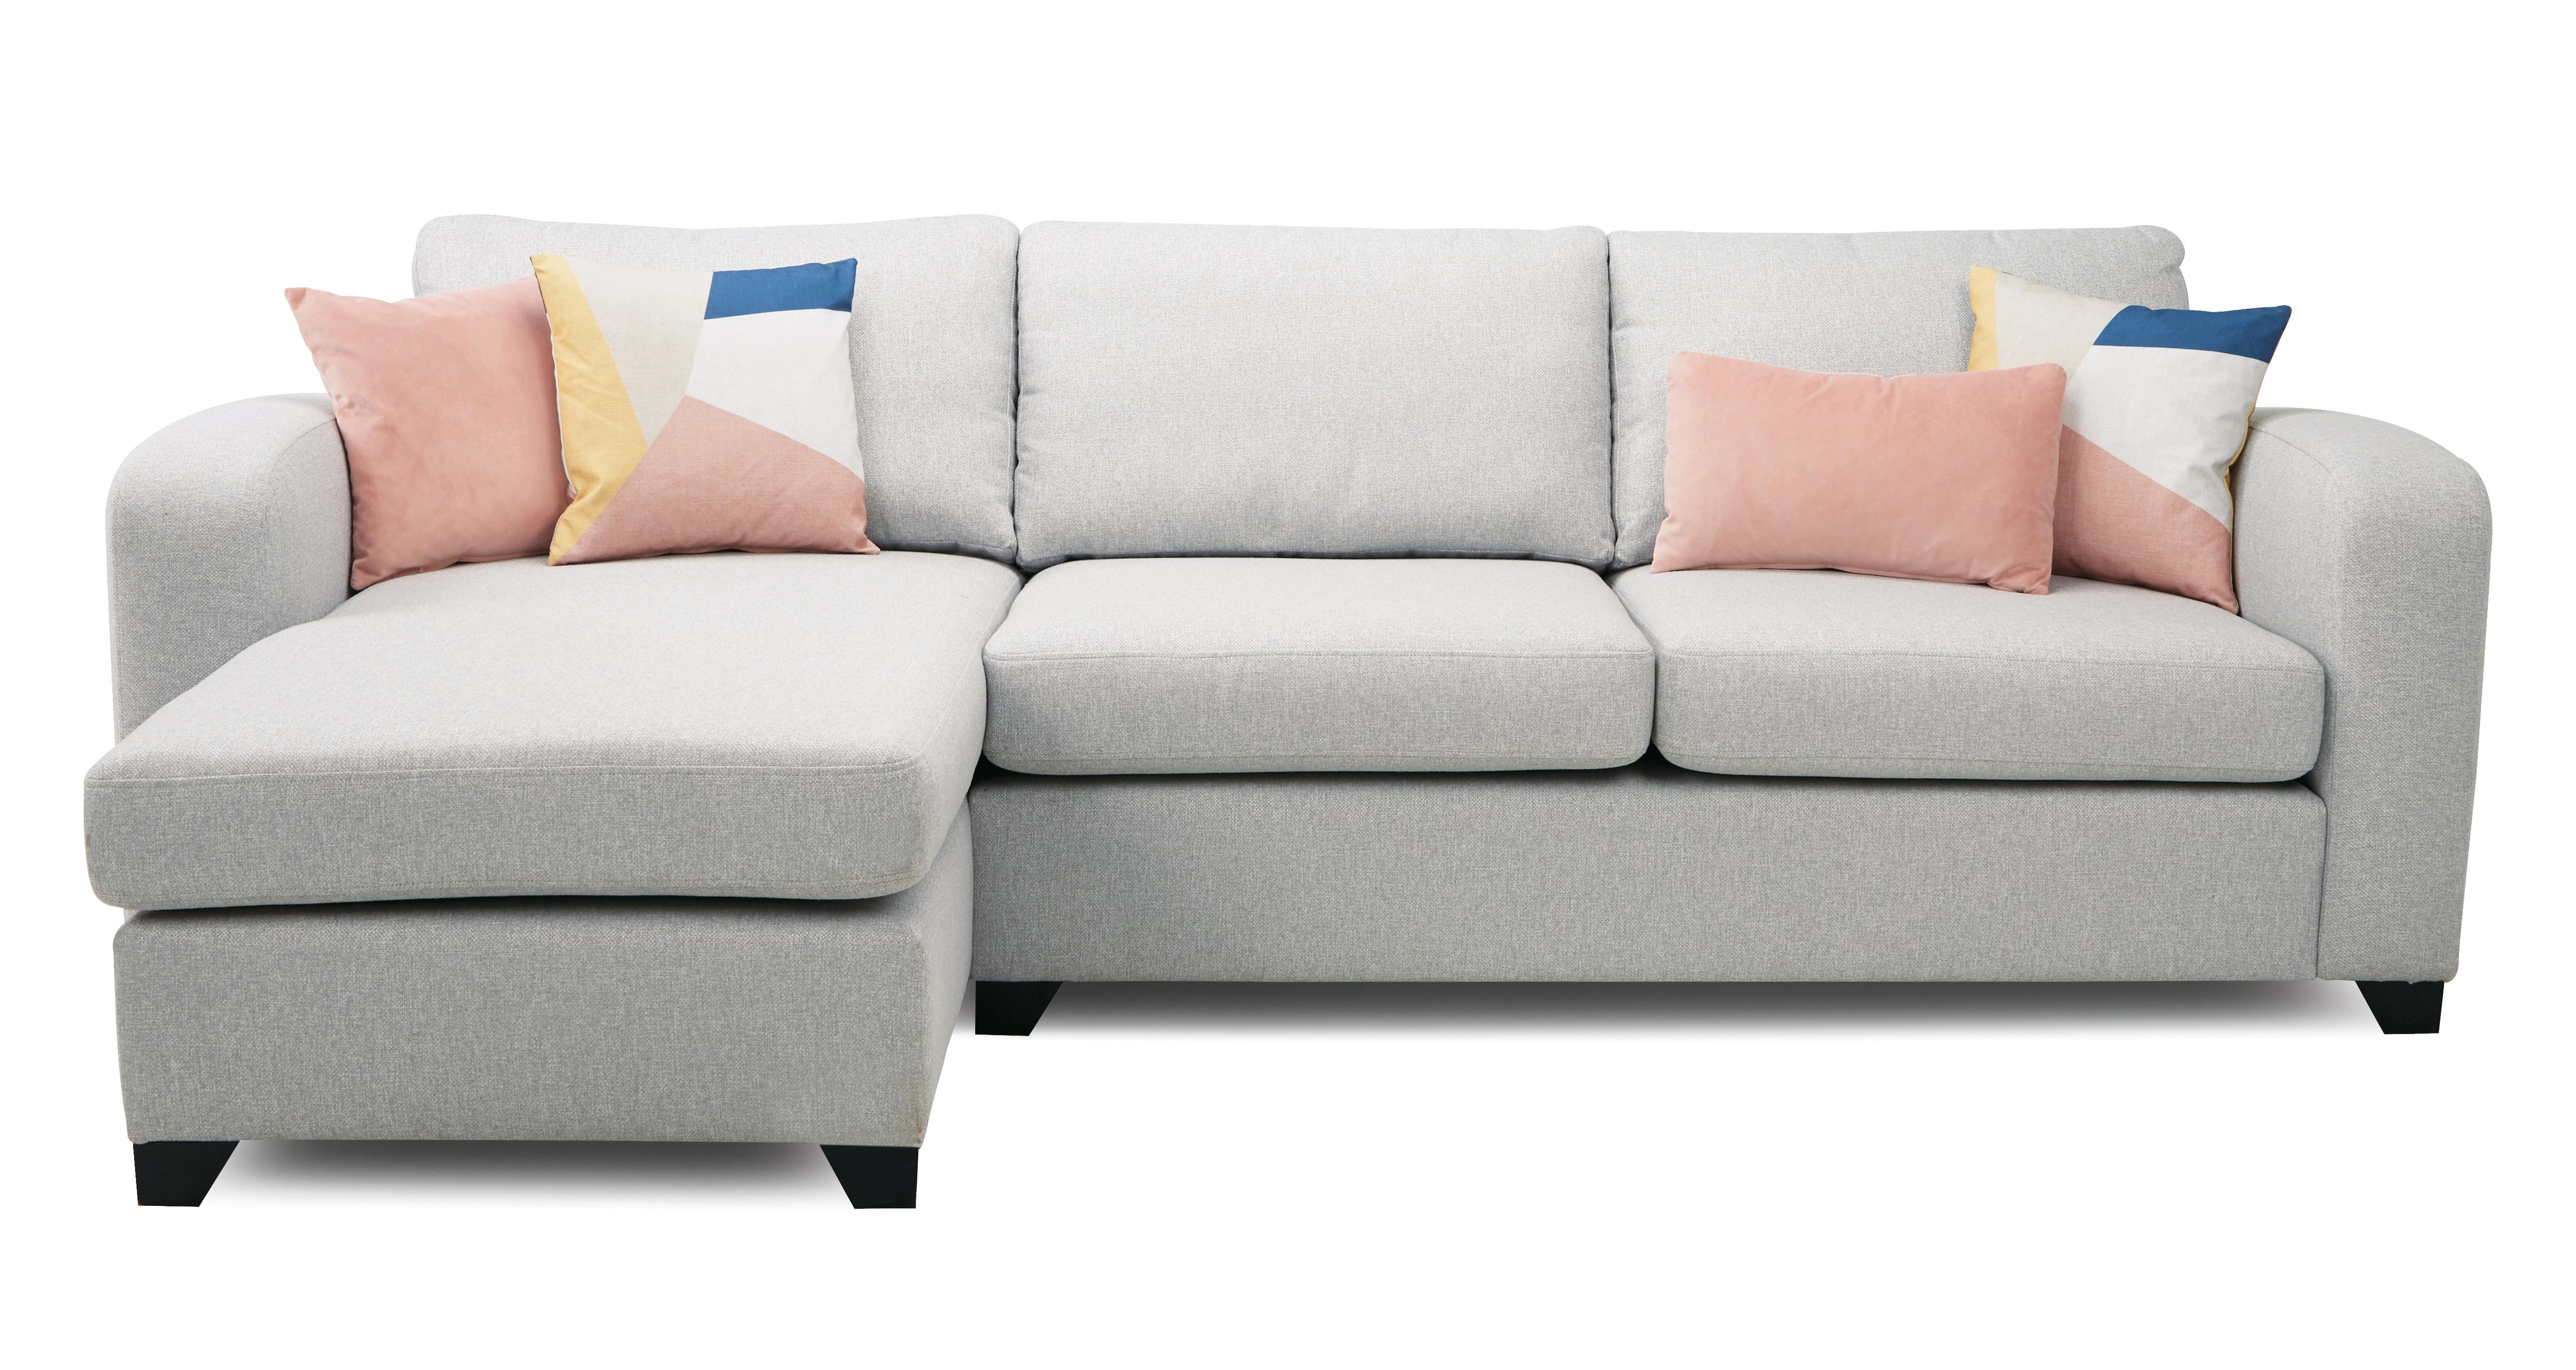 Layla Left Hand Facing Chaise End 3 Seater Sofa Layla